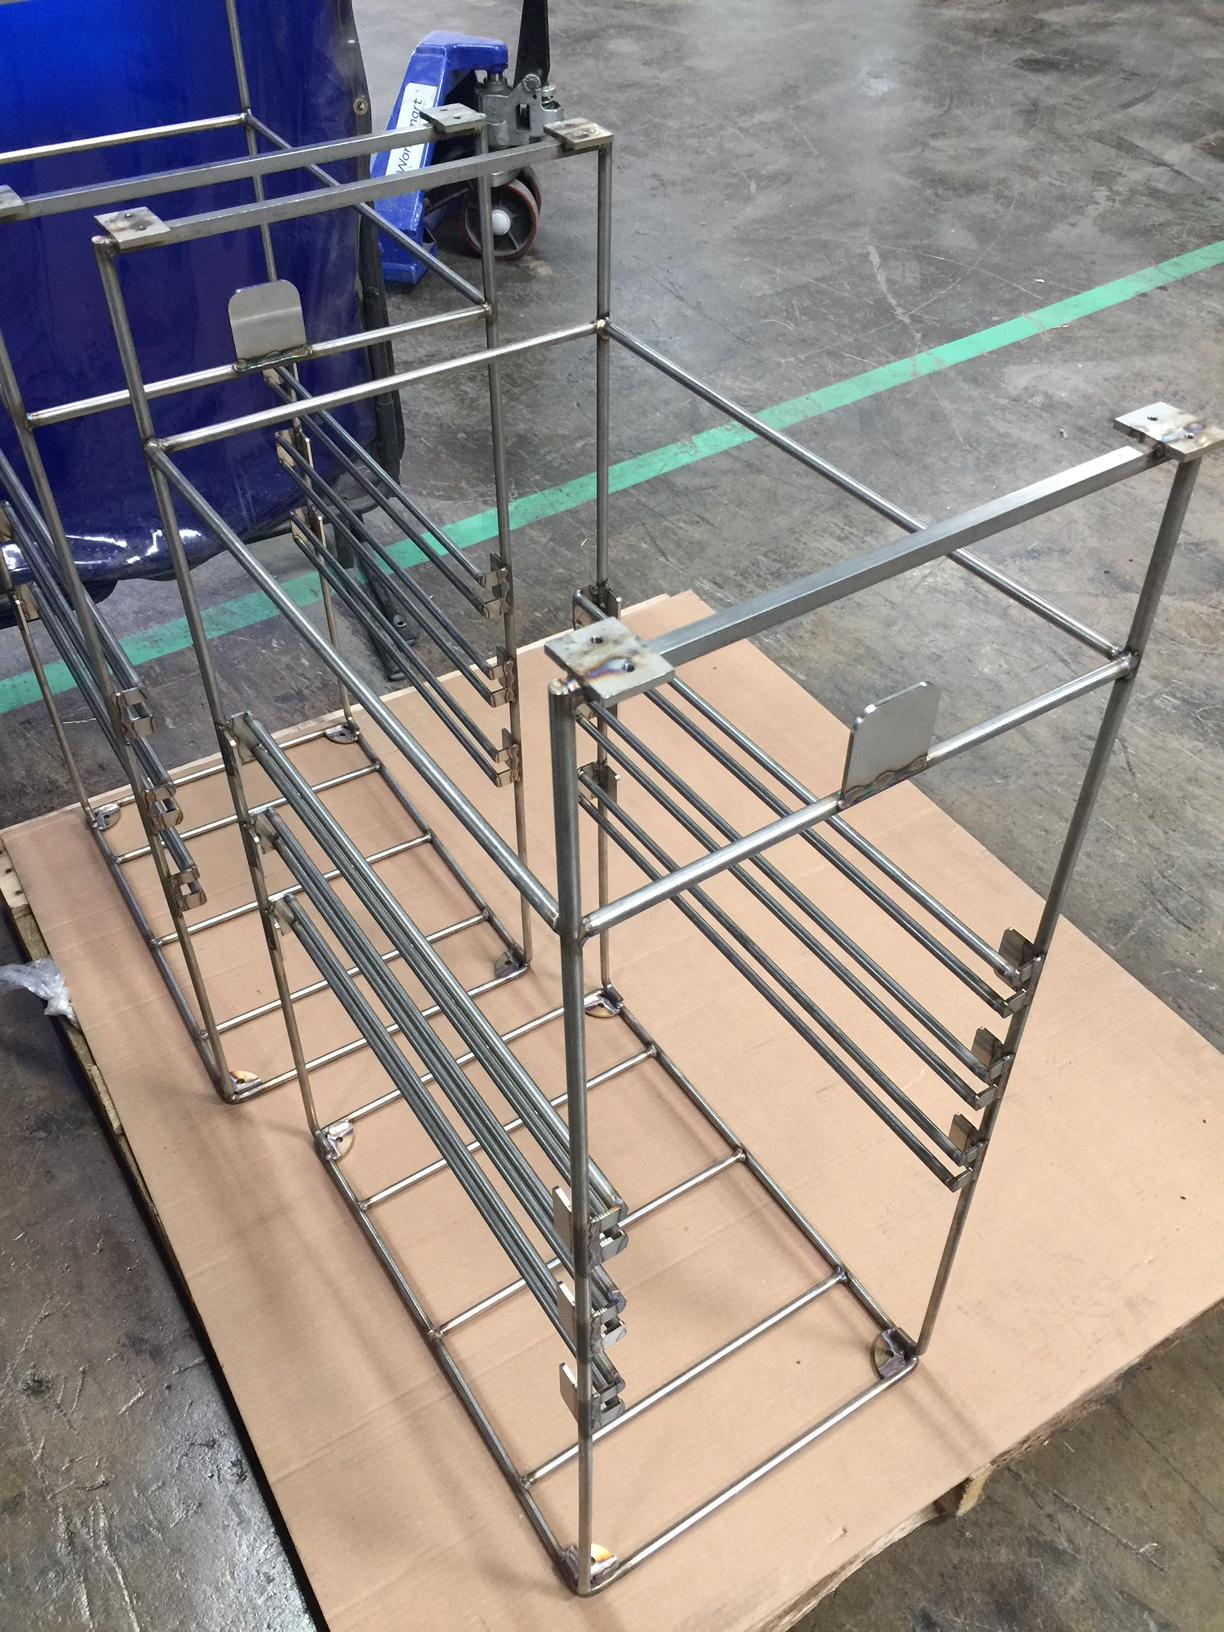 This grade 316 stainless steel pharmaceutical manufacturing rack was specially optimized for a harsh sterilization process.